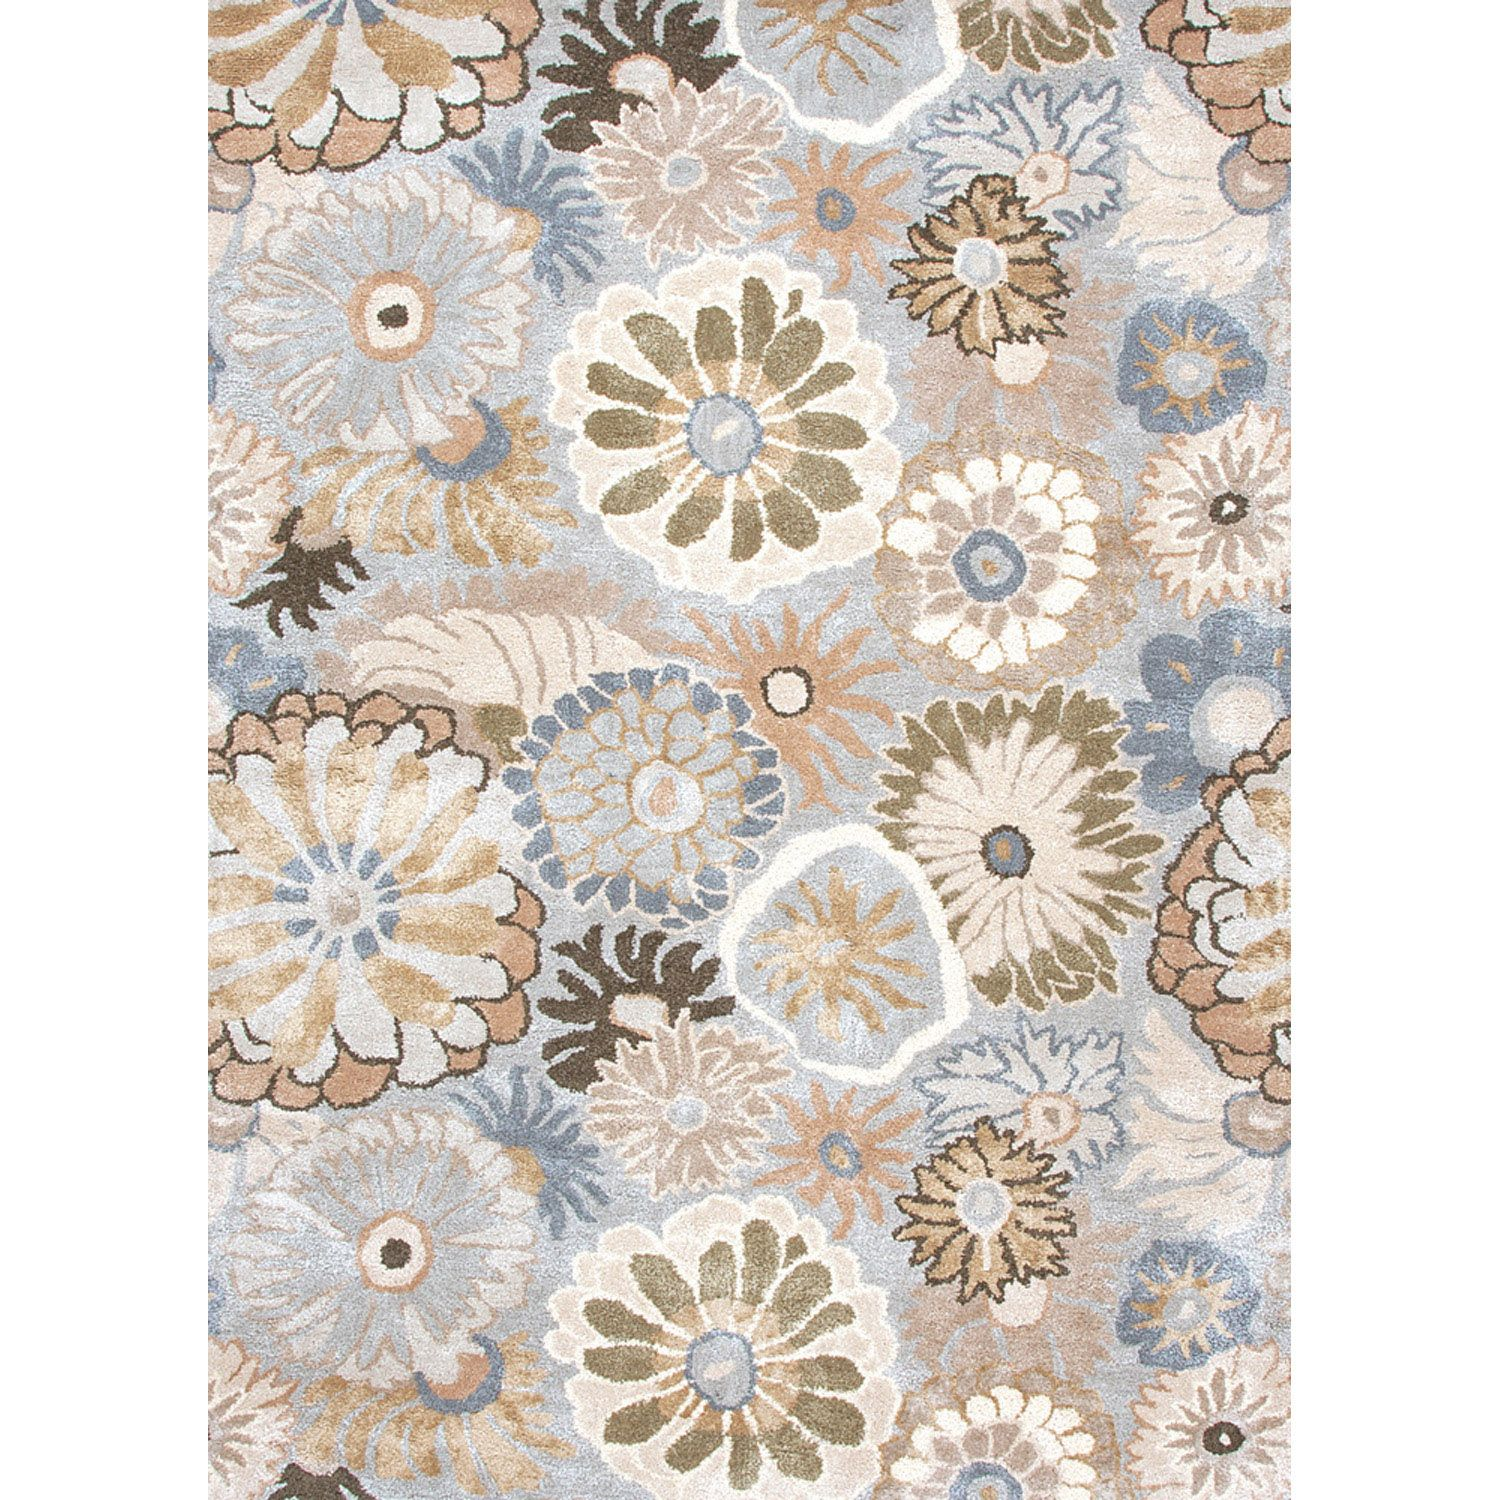 Inspired by bold ethnic textiles and the rich hues of Indian spices, this rug encourages individual expression with a modern flare. Embellishing this mix of playful colors, some designs incorporate a raised carving effect and art silk accents. This r?